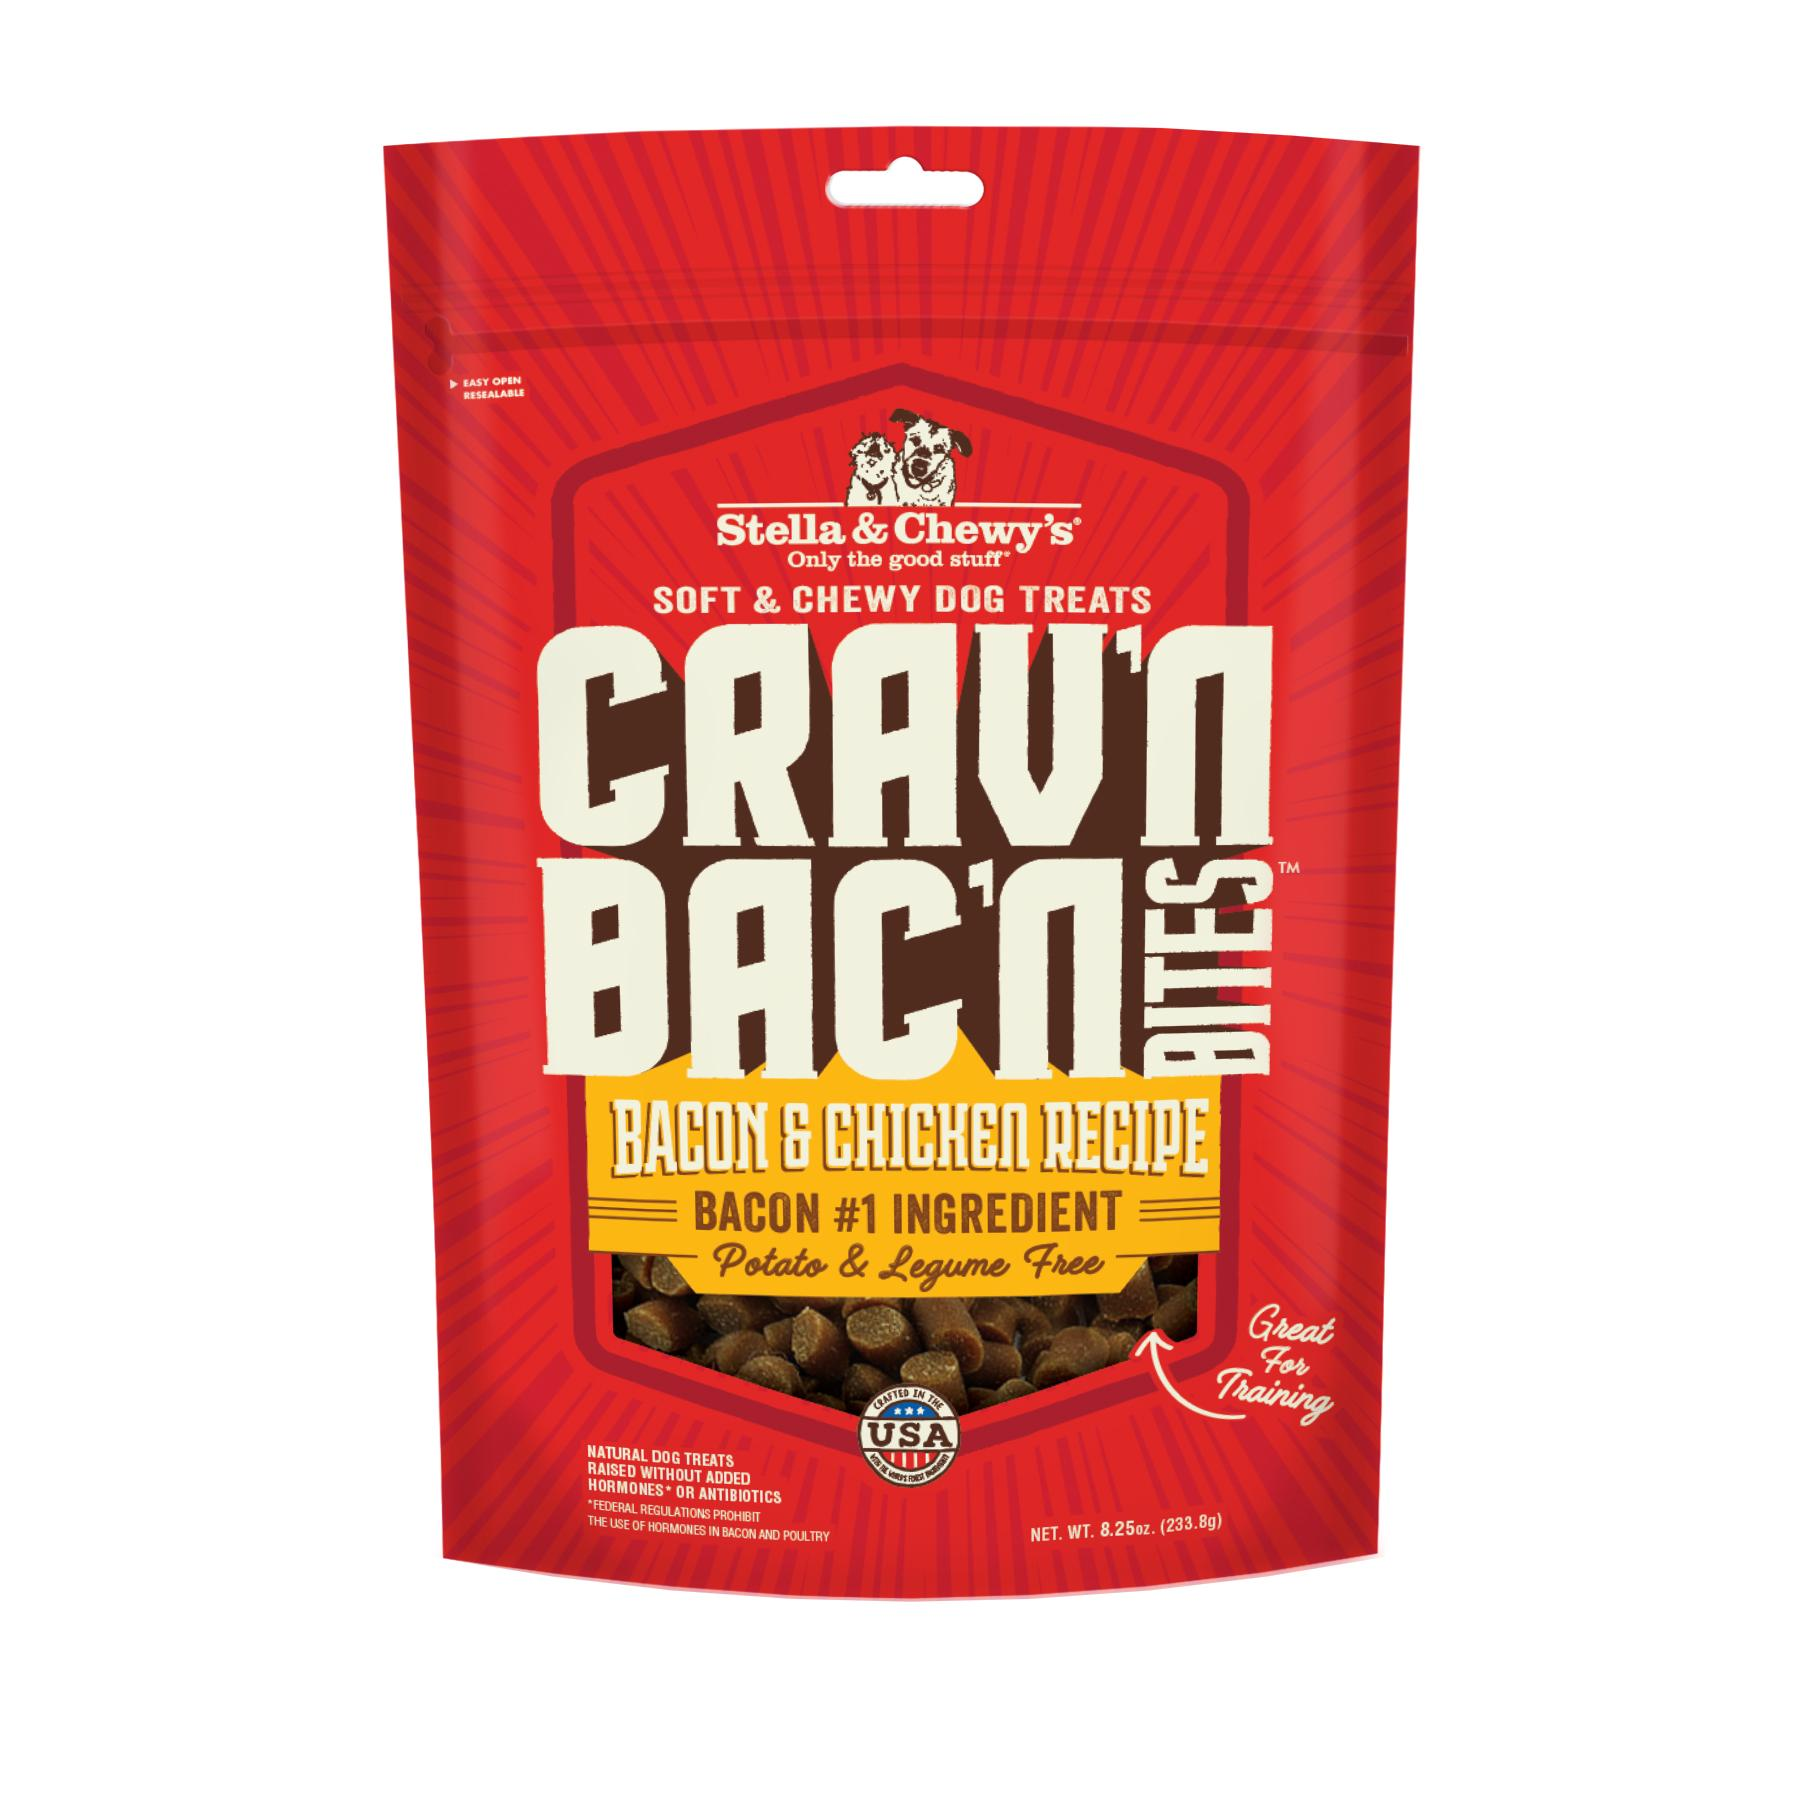 Stella & Chewy's Crav'n Bac'n Bites Bacon & Chicken Recipe Dog Treats Image